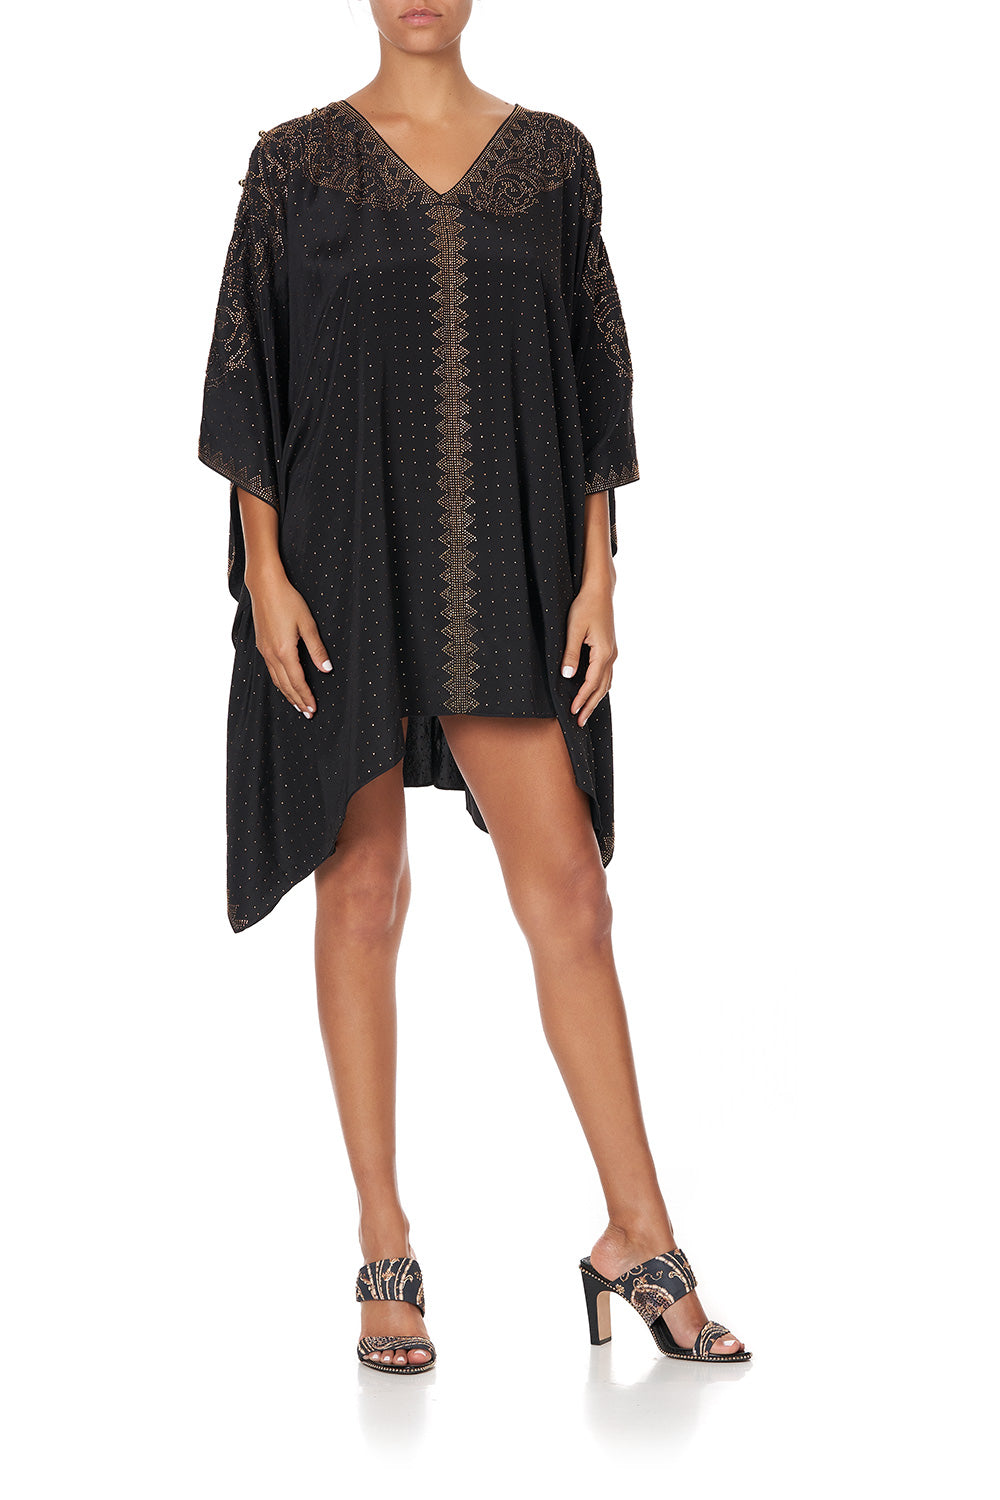 KAFTAN WITH BUTTON UP SLEEVES LUXE BLACK